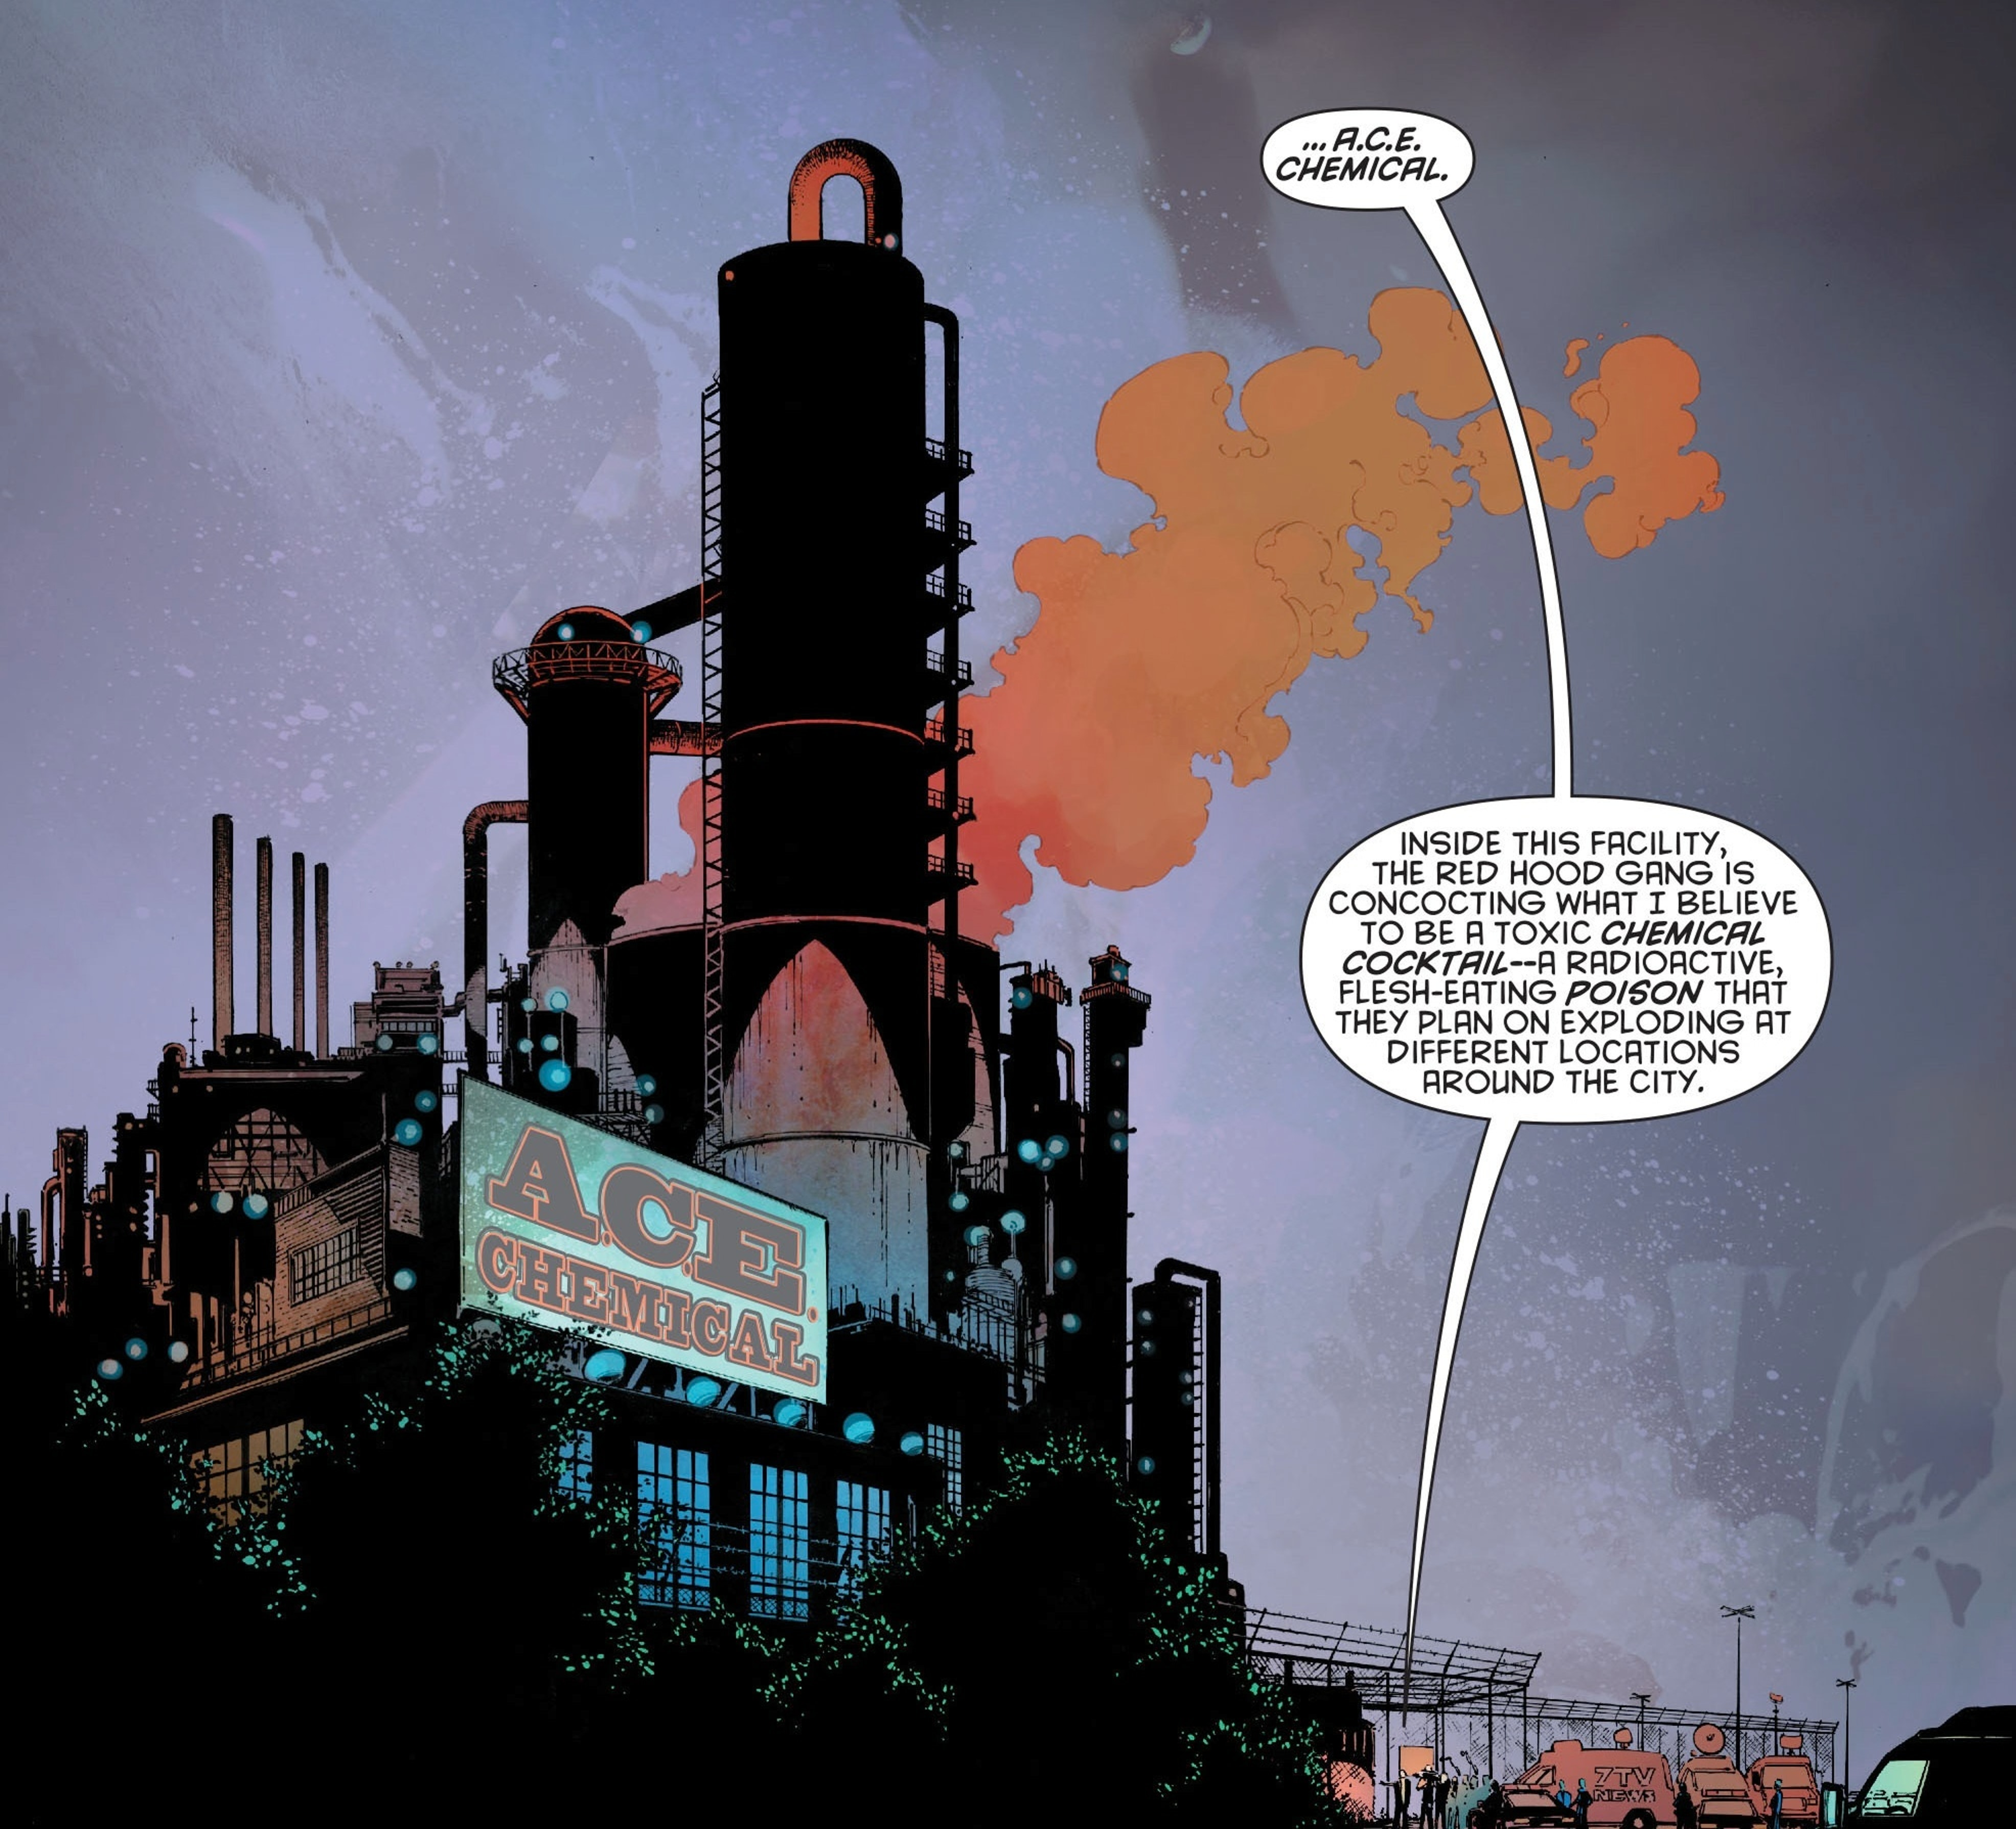 Ace Chemicals, as seen in 'Batman' #24 in the New 52.